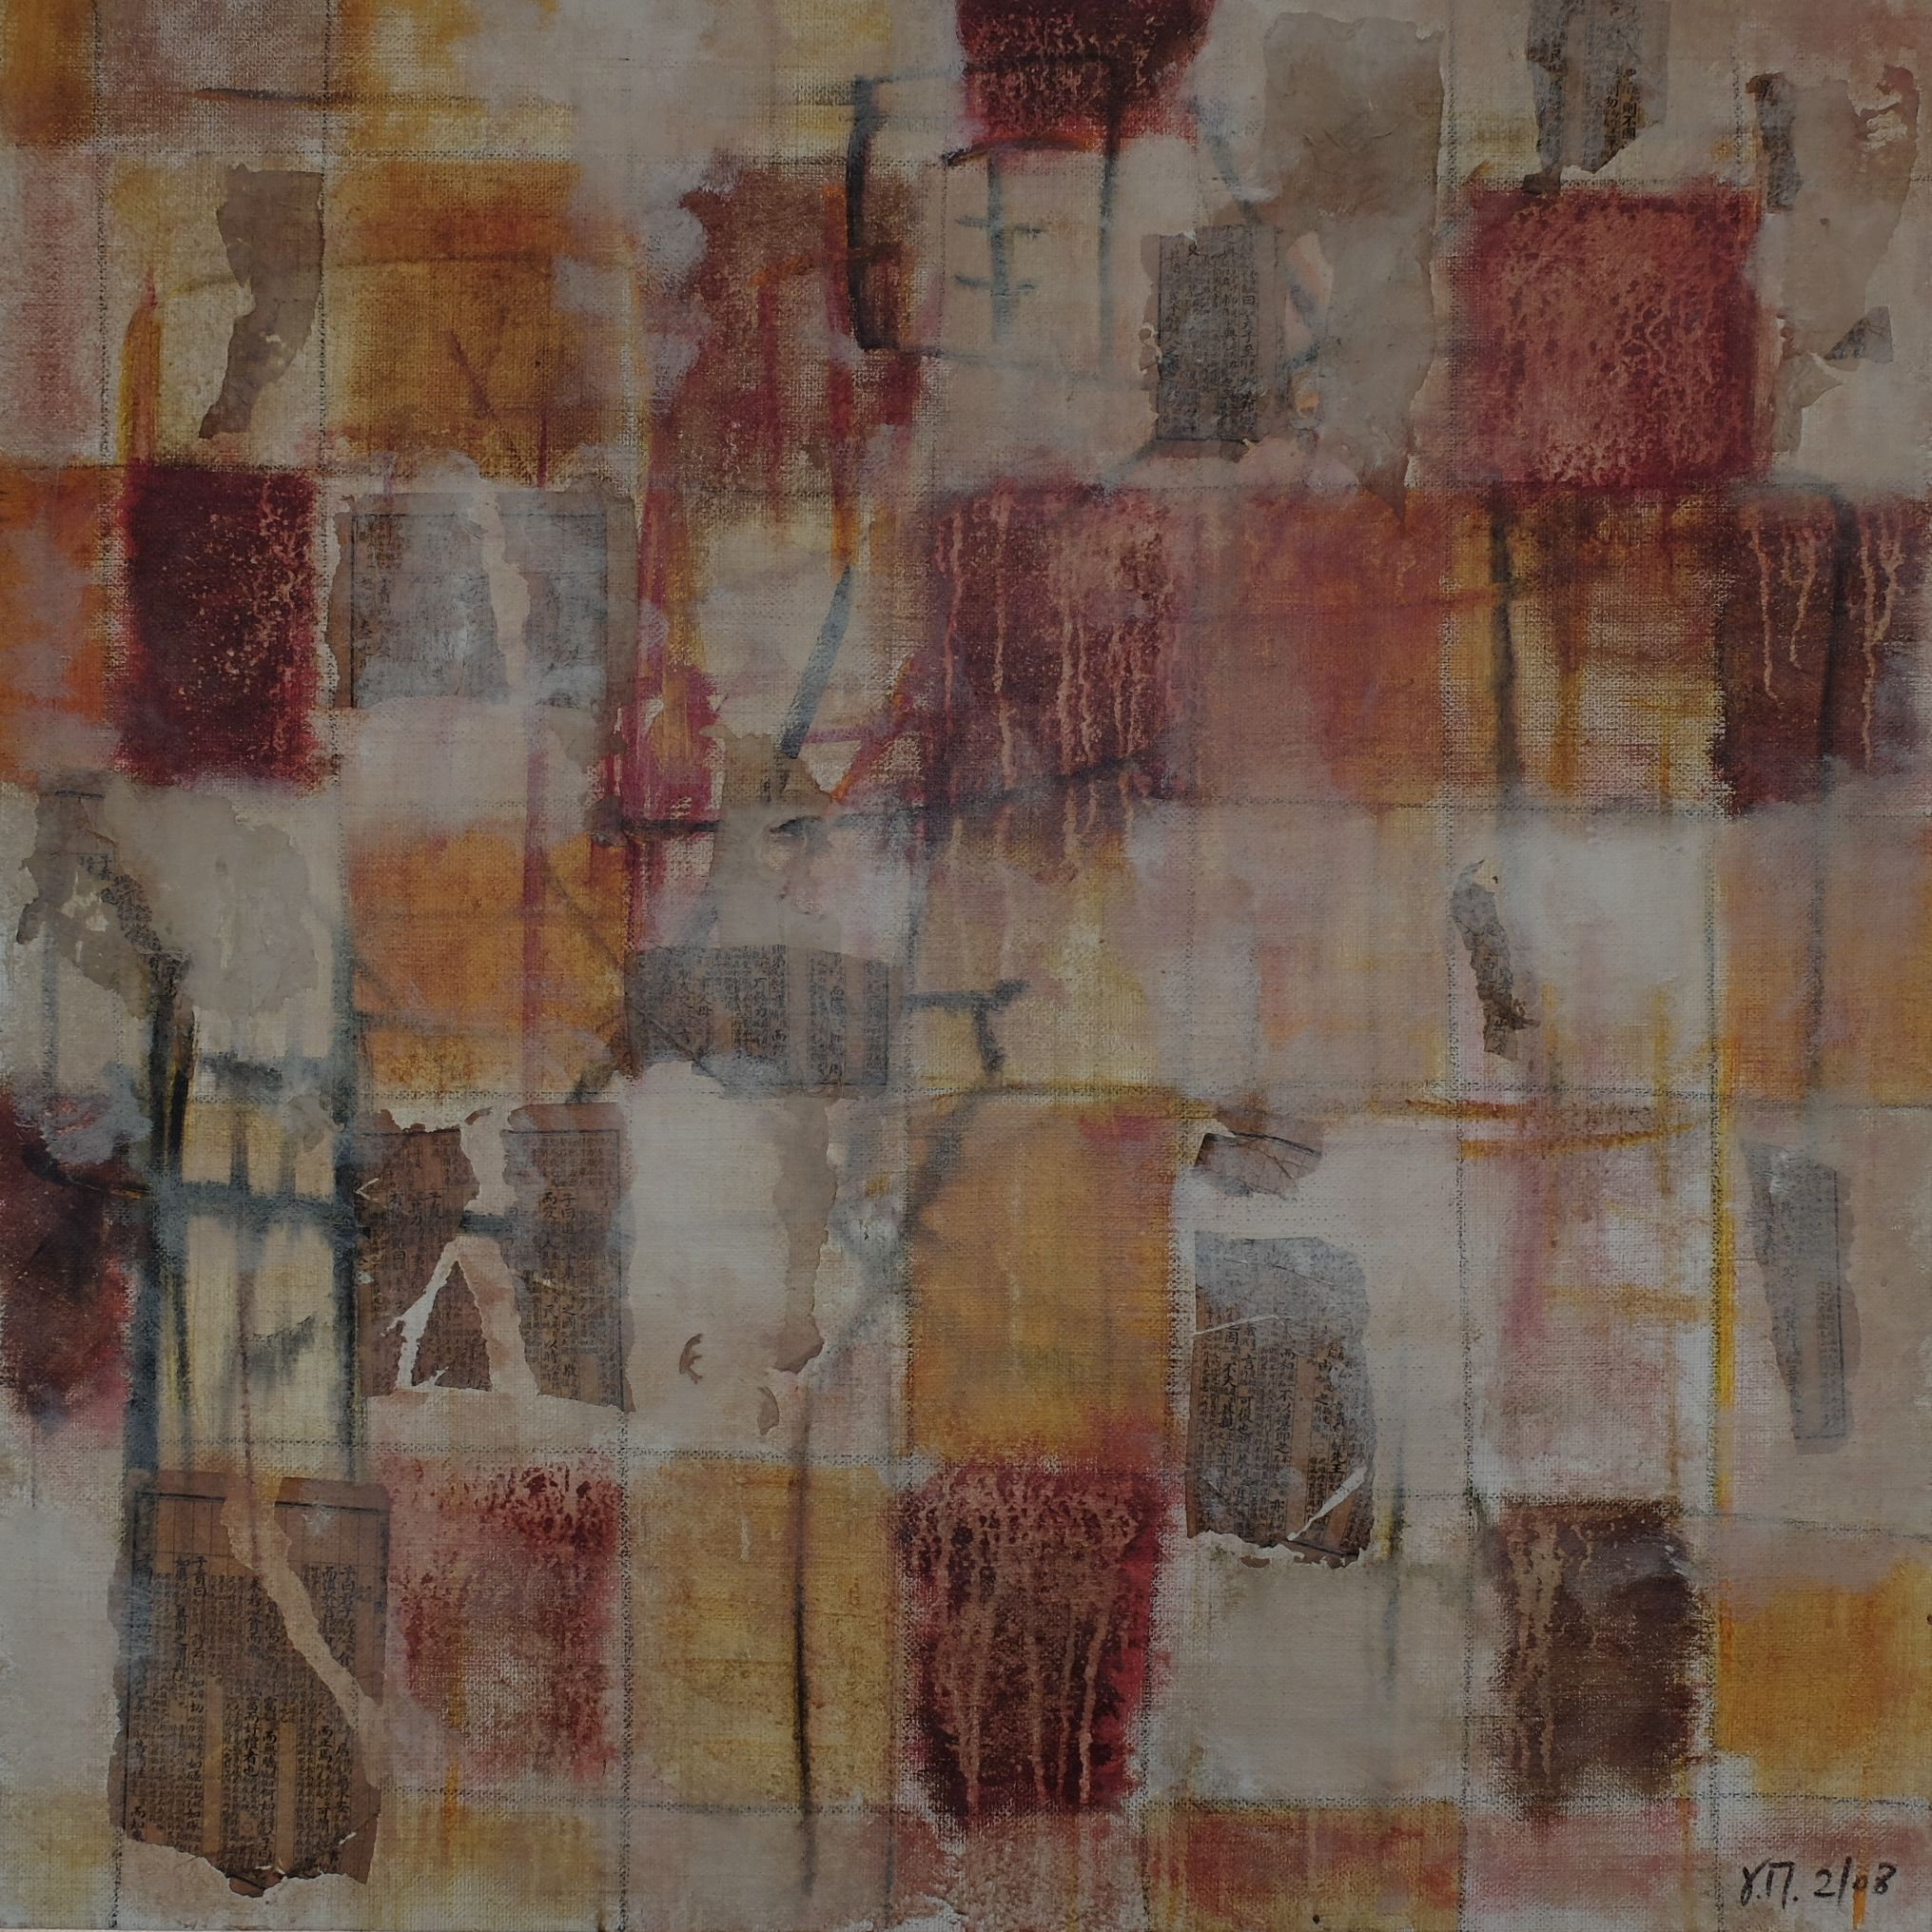 sans titre; mixed media on canvas; 90x90; 2008